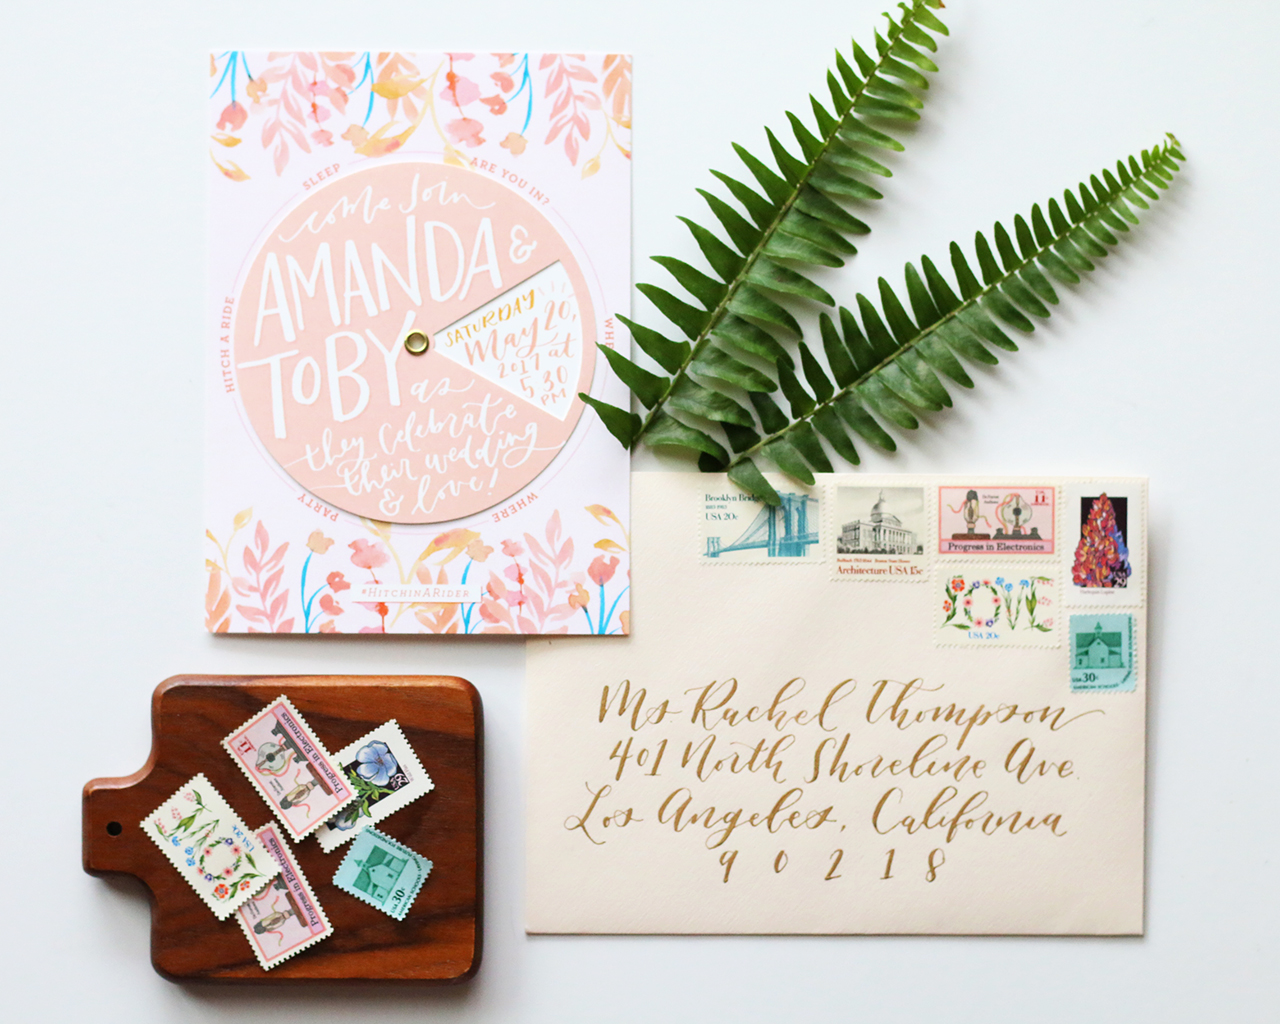 Playful Floral Pinwheel Wedding Invitations by Goldie Design Co.